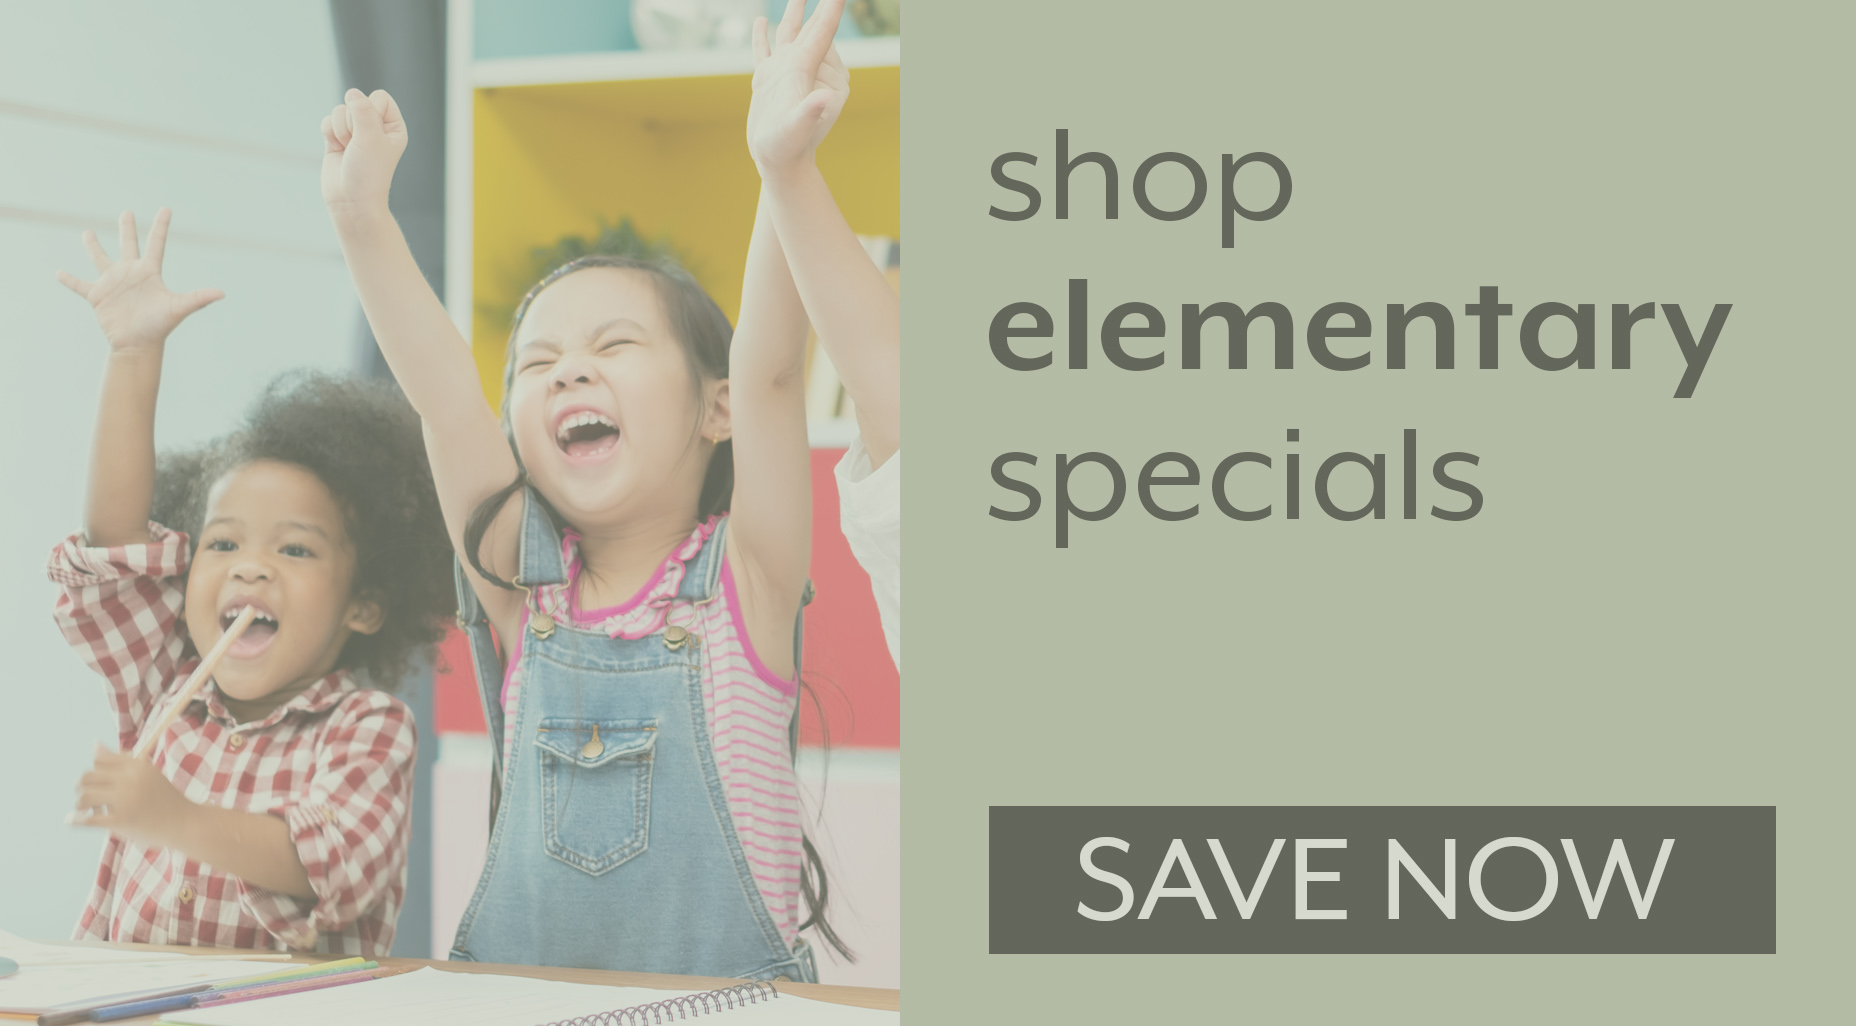 SAVE NOW ON ELEMENTARY SPECIALS